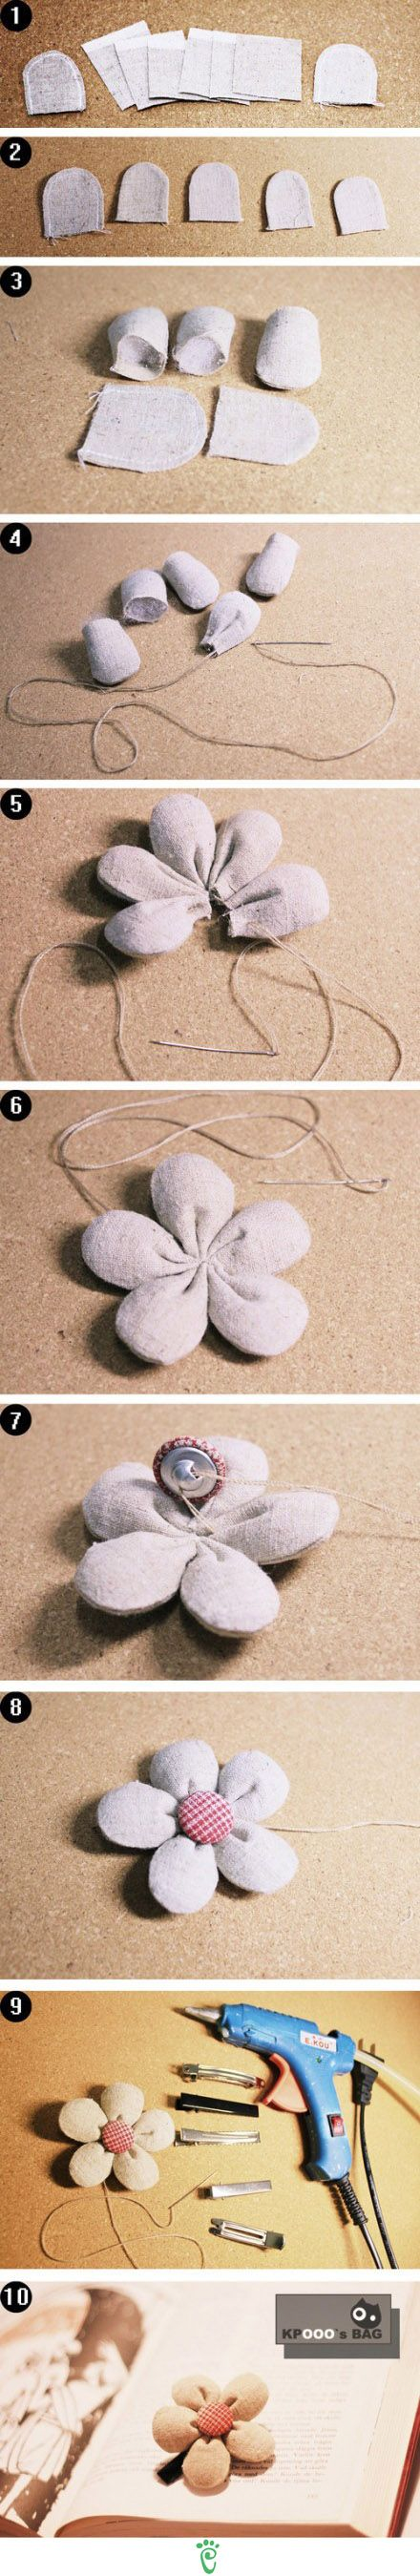 fabric flowers to make for cushions etc - this technique is just fantastic!!